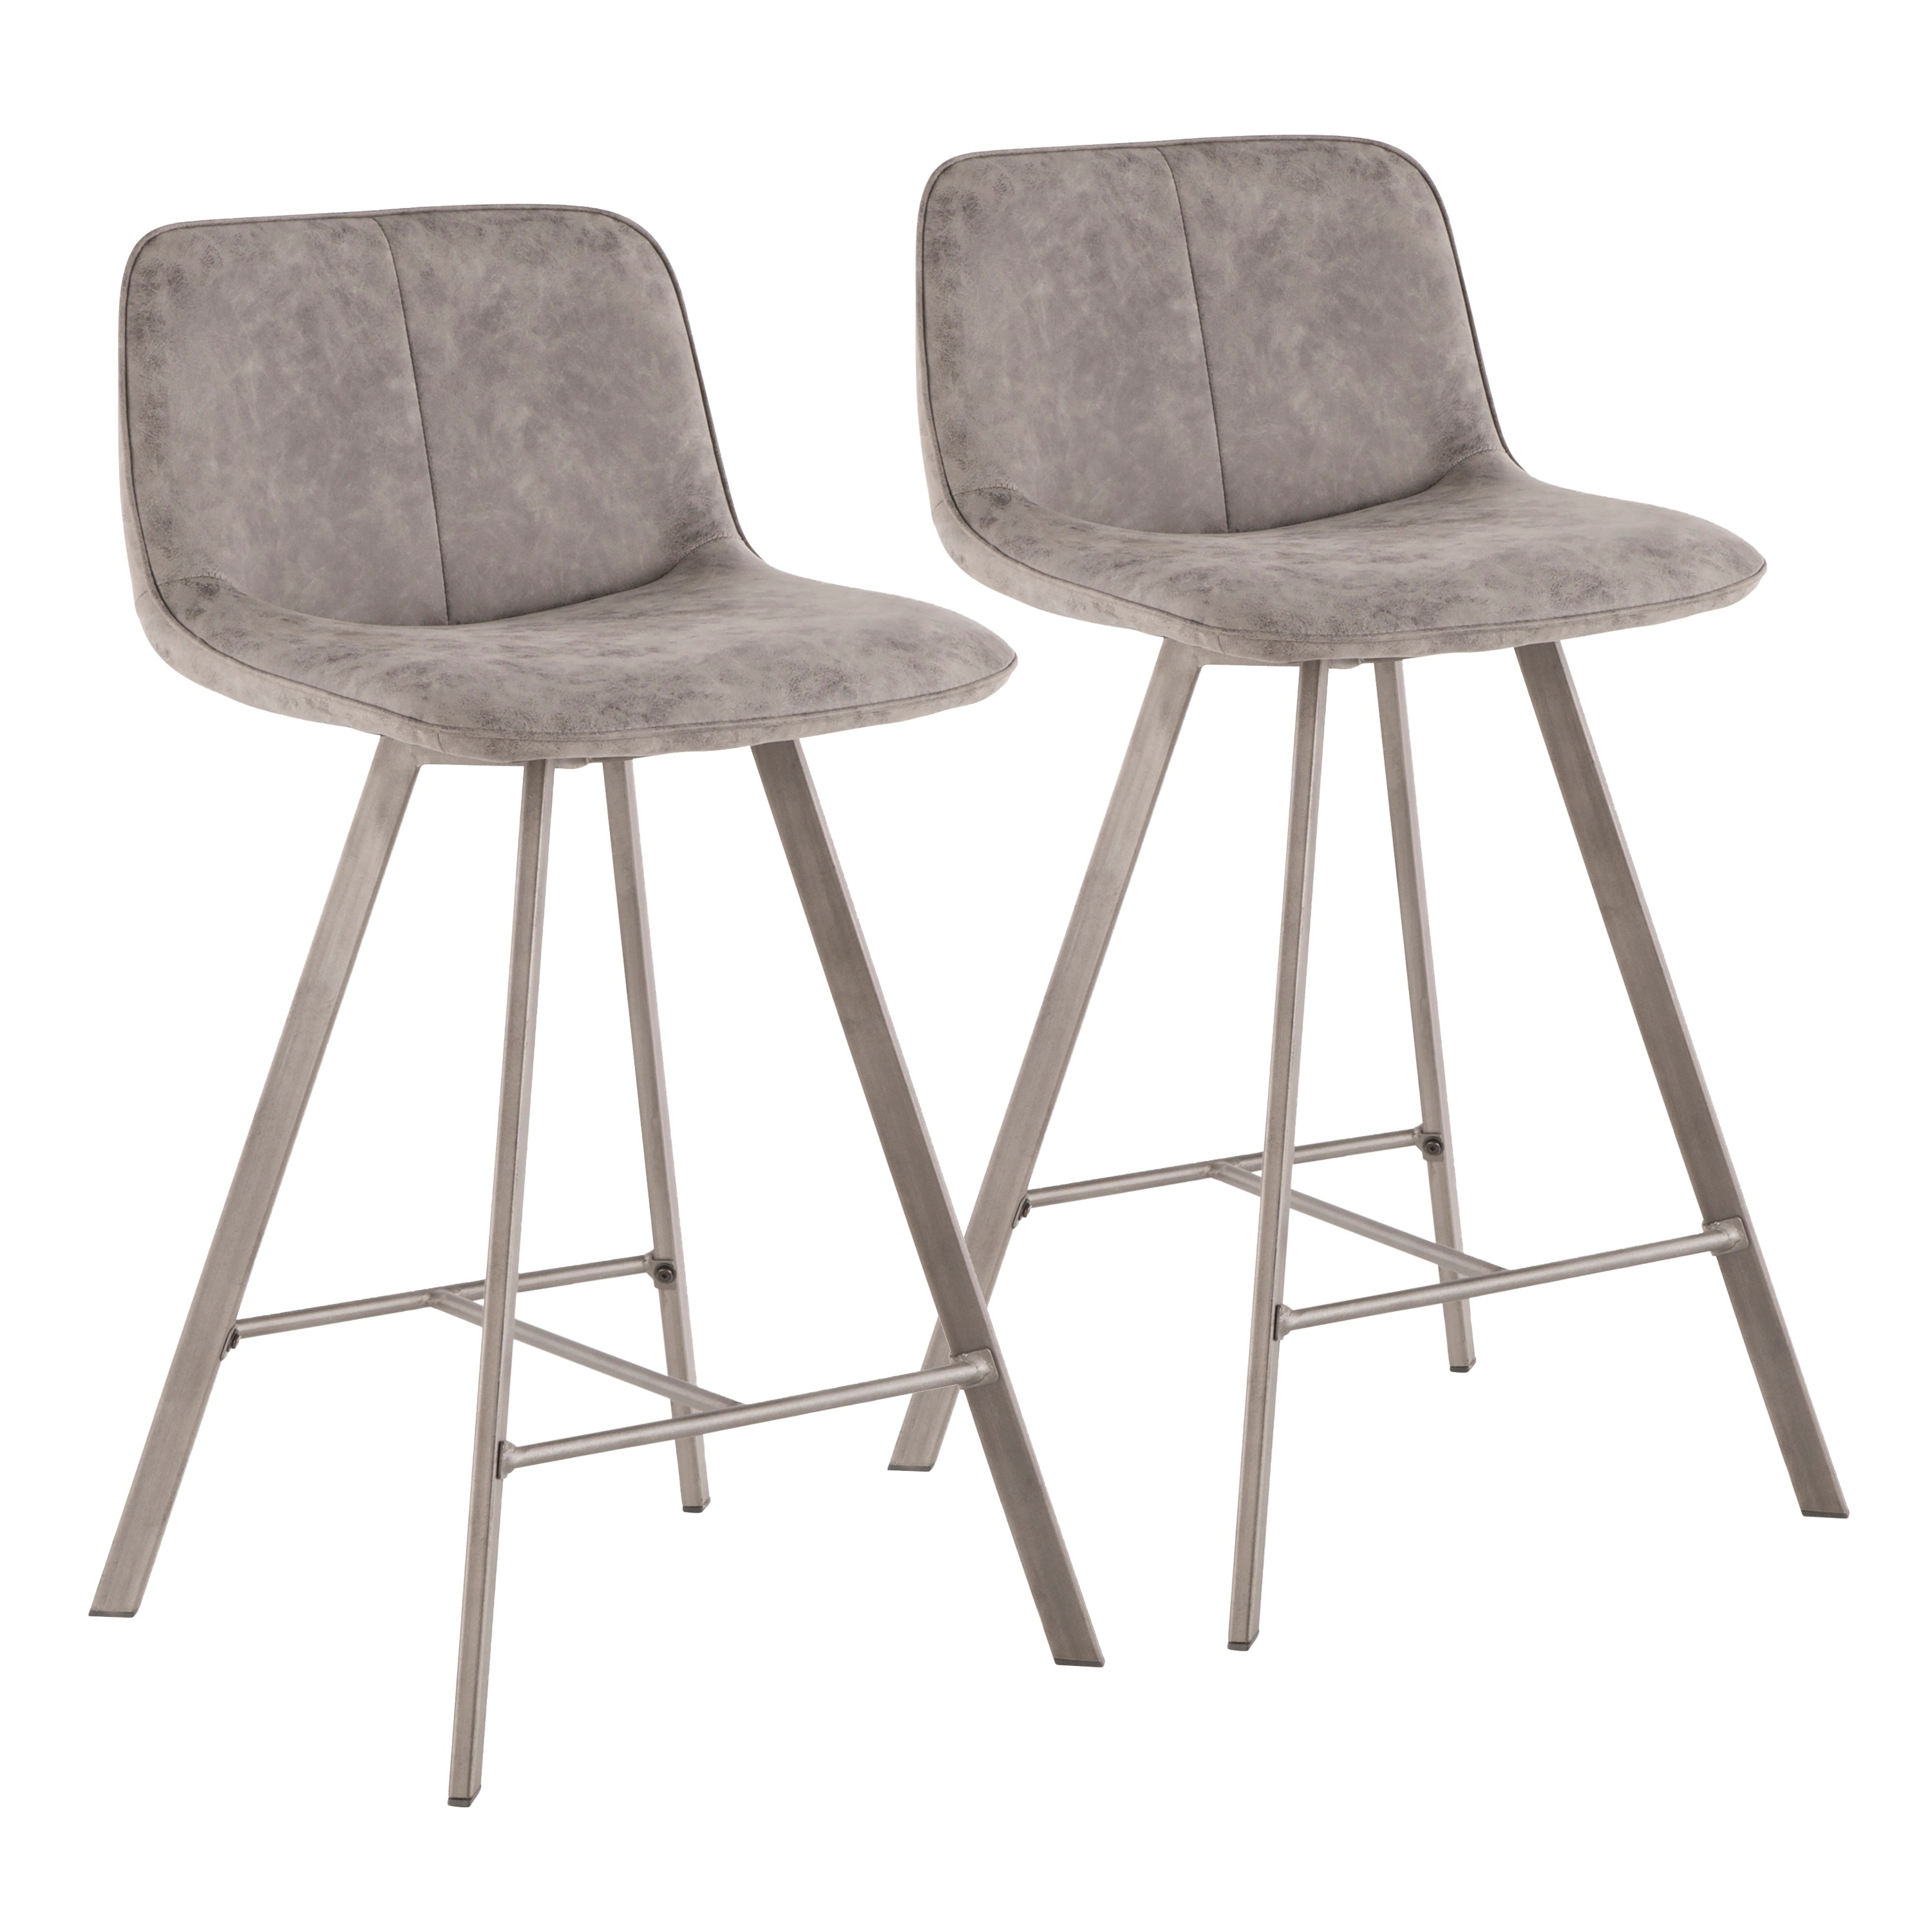 Shop Sedona 26 Industrial Upholstered Counter Stool Set Of 2 On